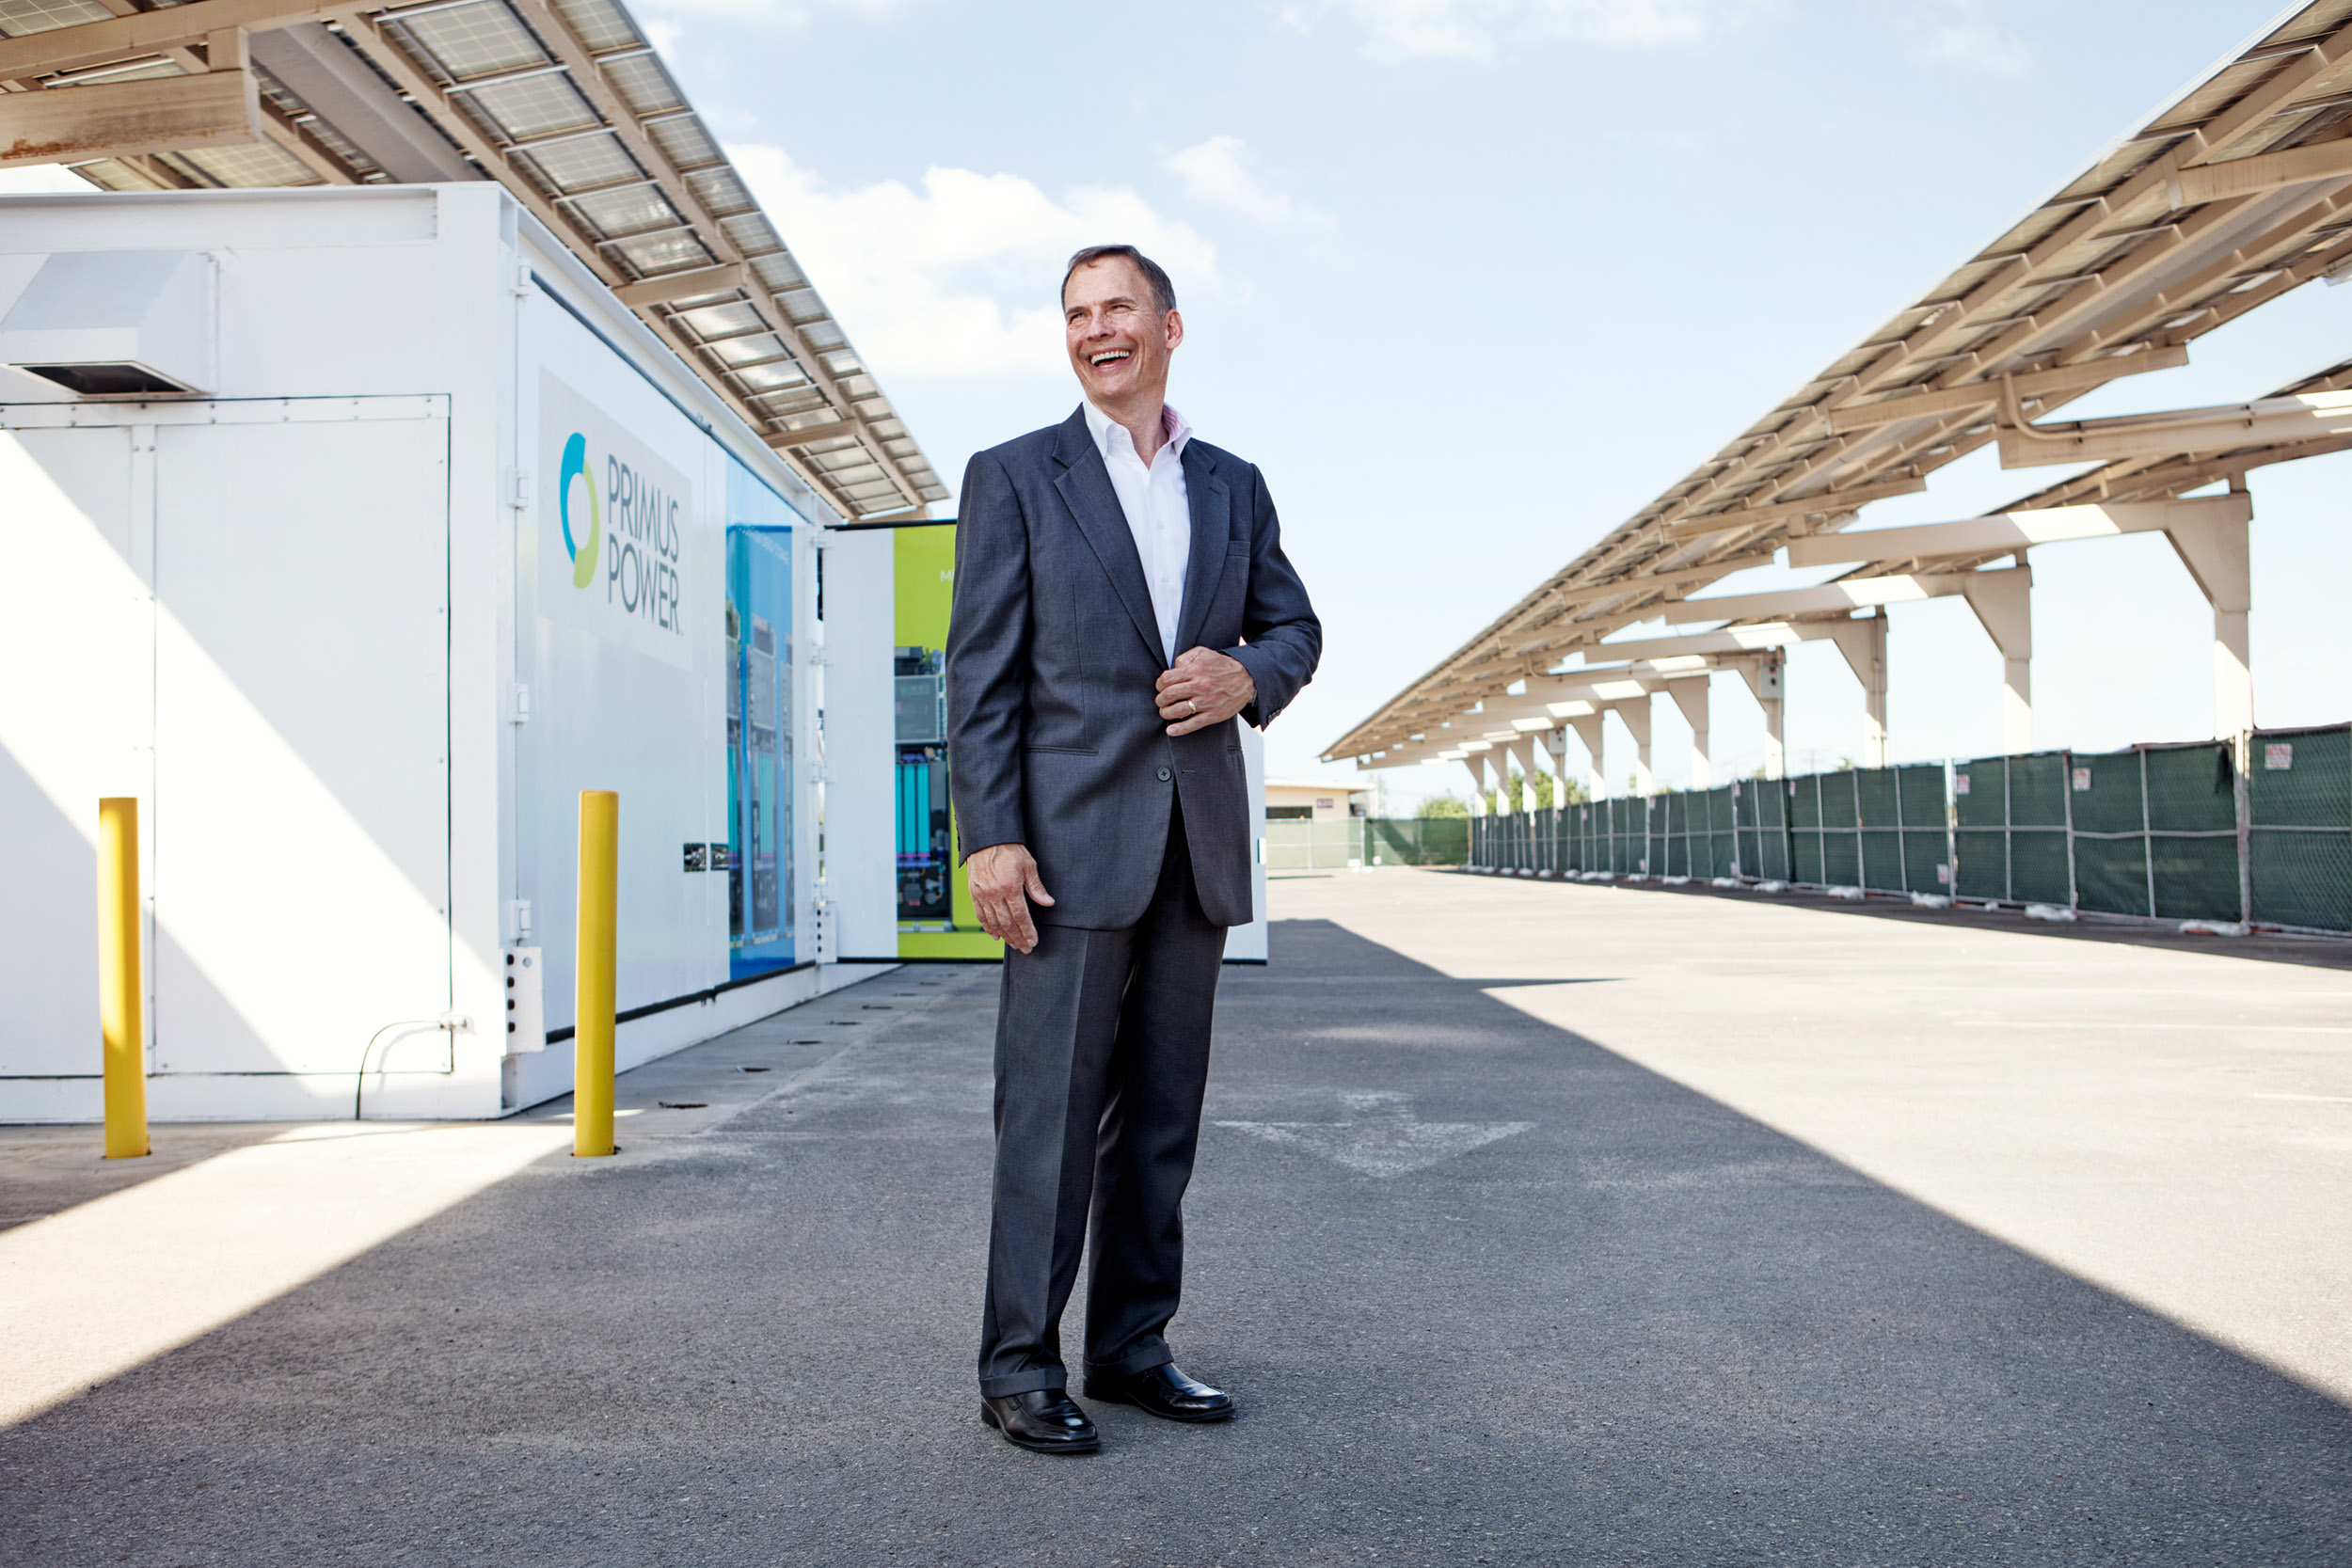 24_corporate_portrait_alternative_energy_ceo.jpg